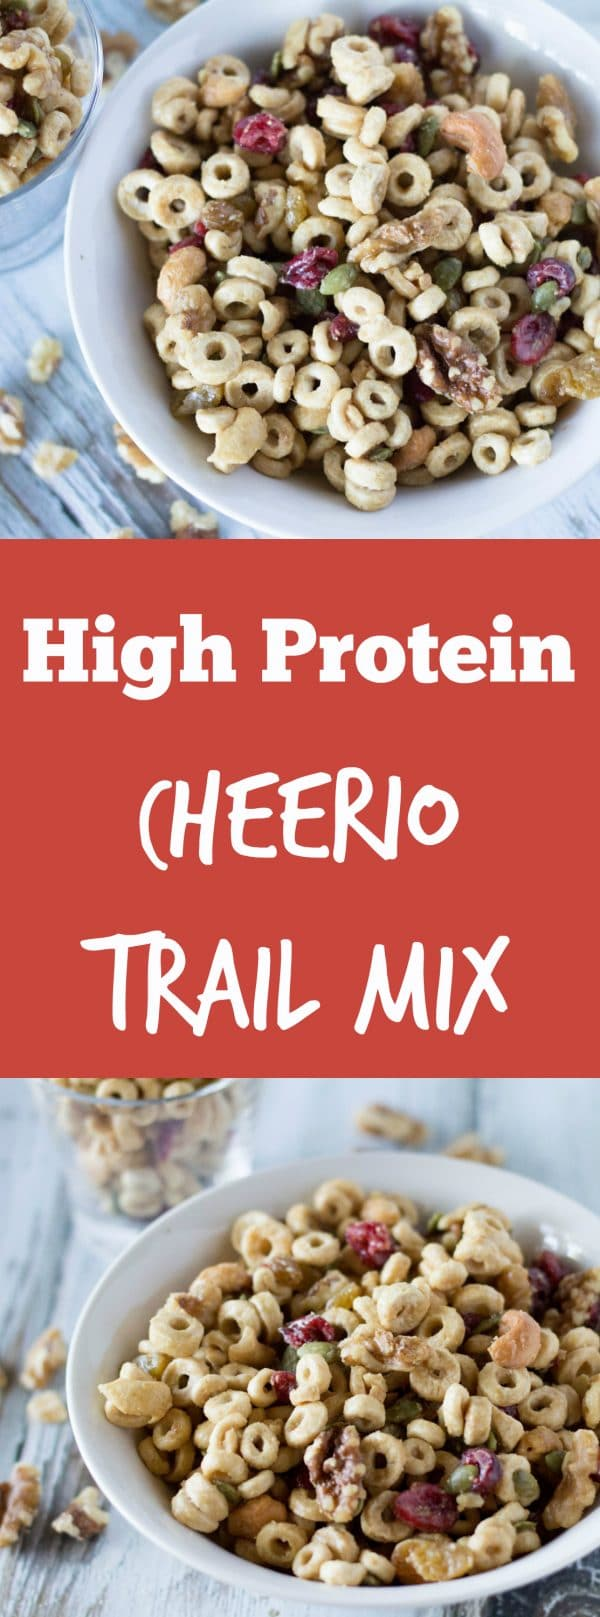 High Protein Cheerio Trail Mix |Krollskorner.com